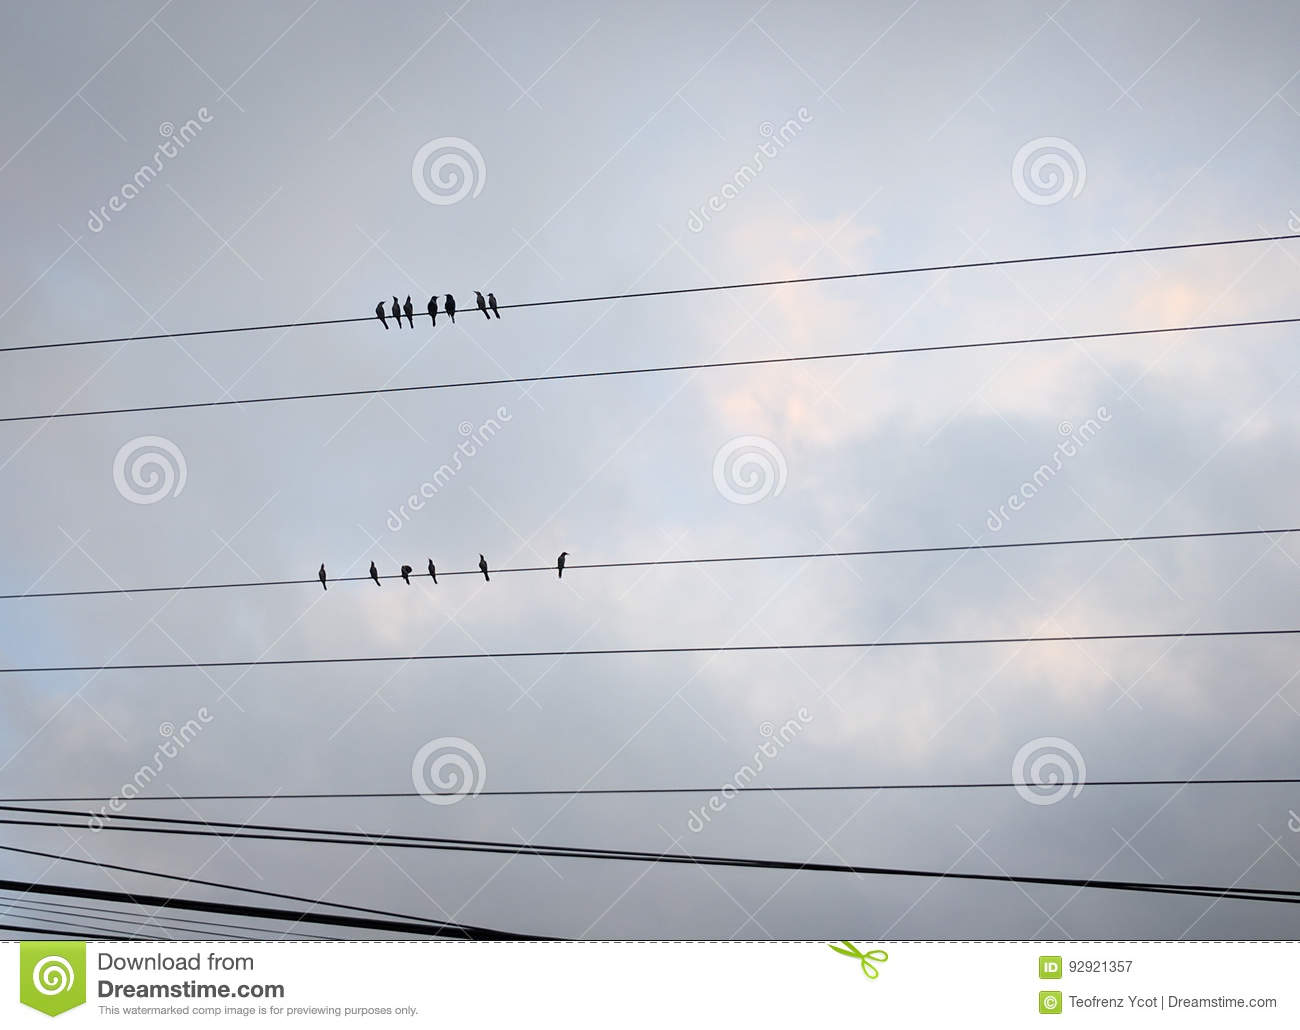 Birds on wire stock image. Image of live, perched, perching - 92921357